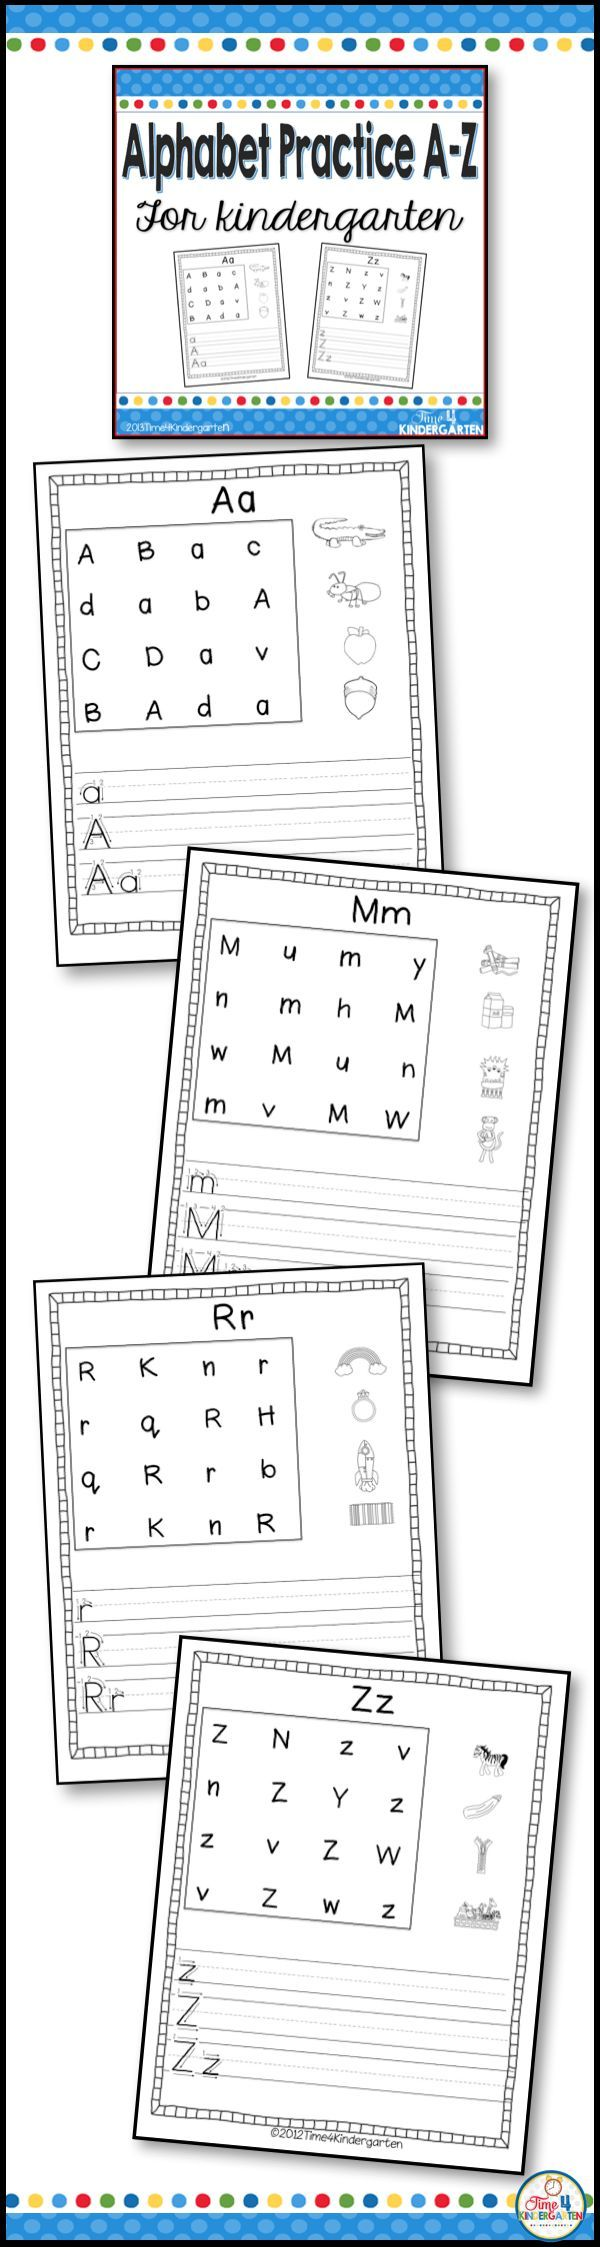 Alphabet practice for kindergarten- letter search, letter writing and corresponding pictures for ech letter of the alphabet.